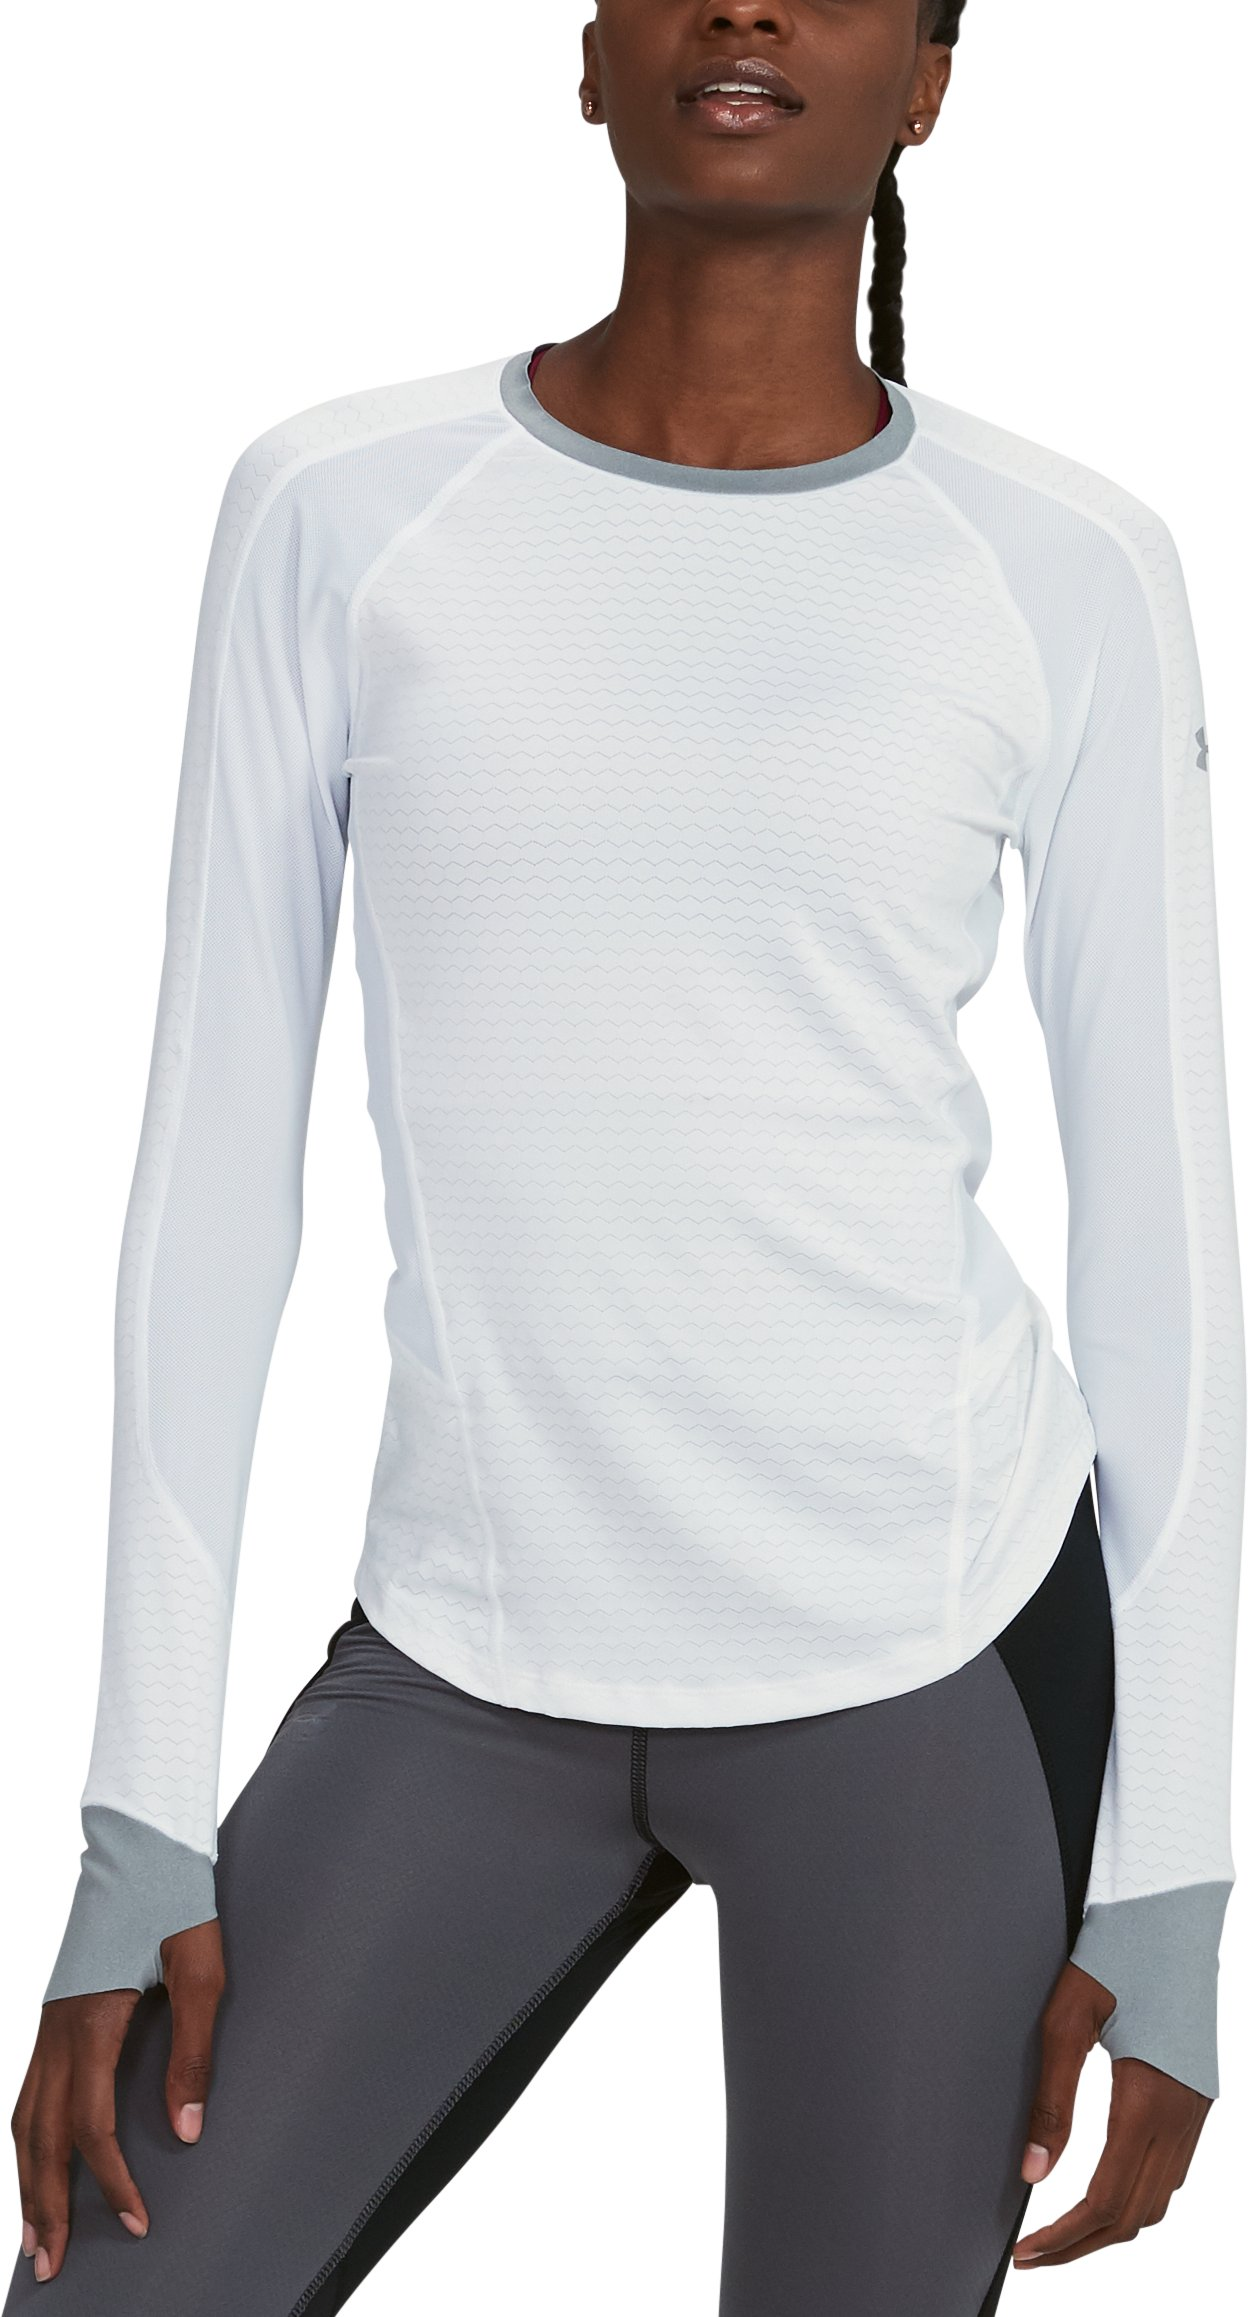 Women's Workout Shirts & Tanks | Under Armour US